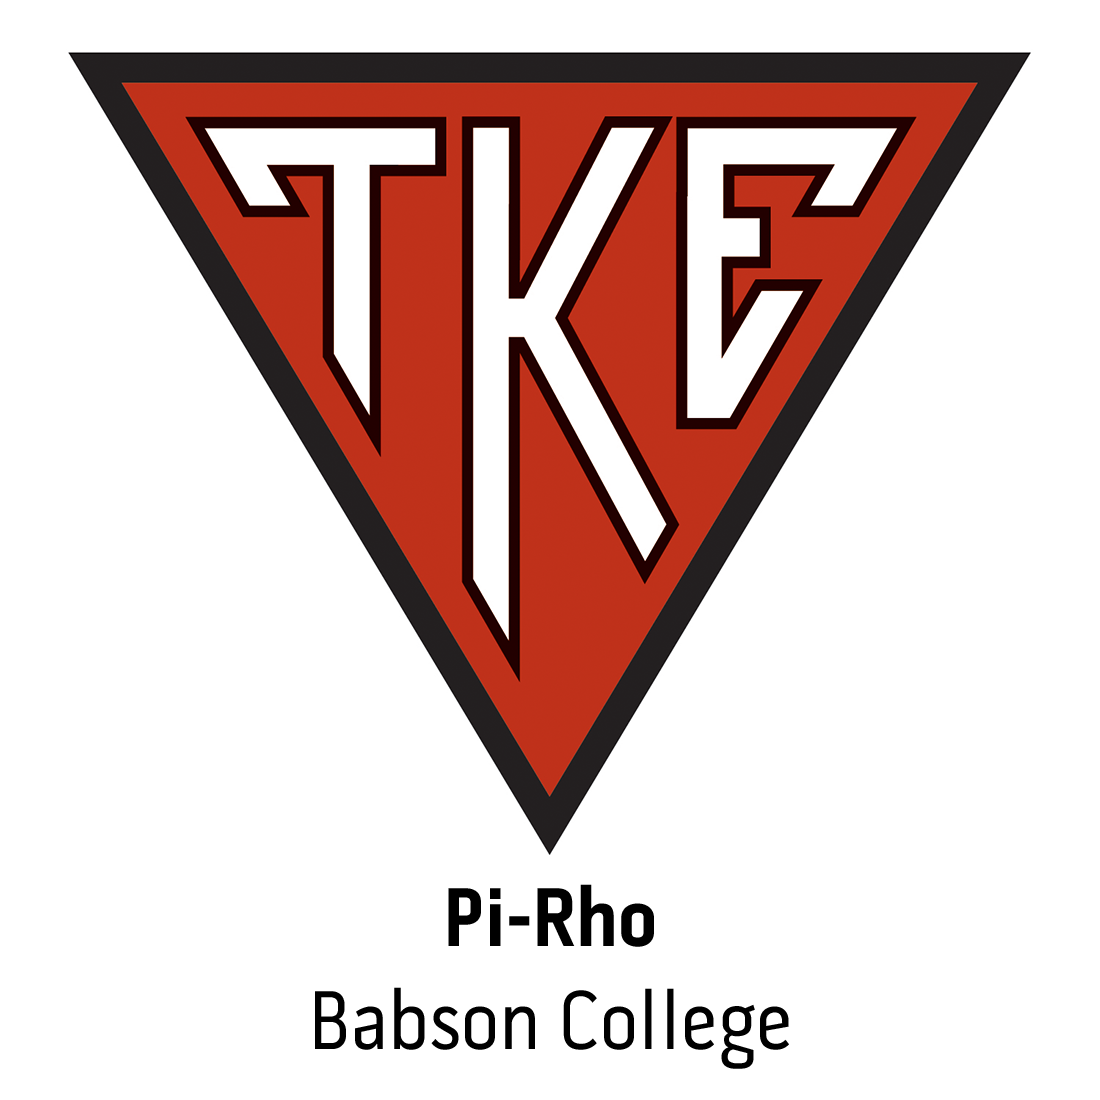 Pi-Rho Chapter at Babson College